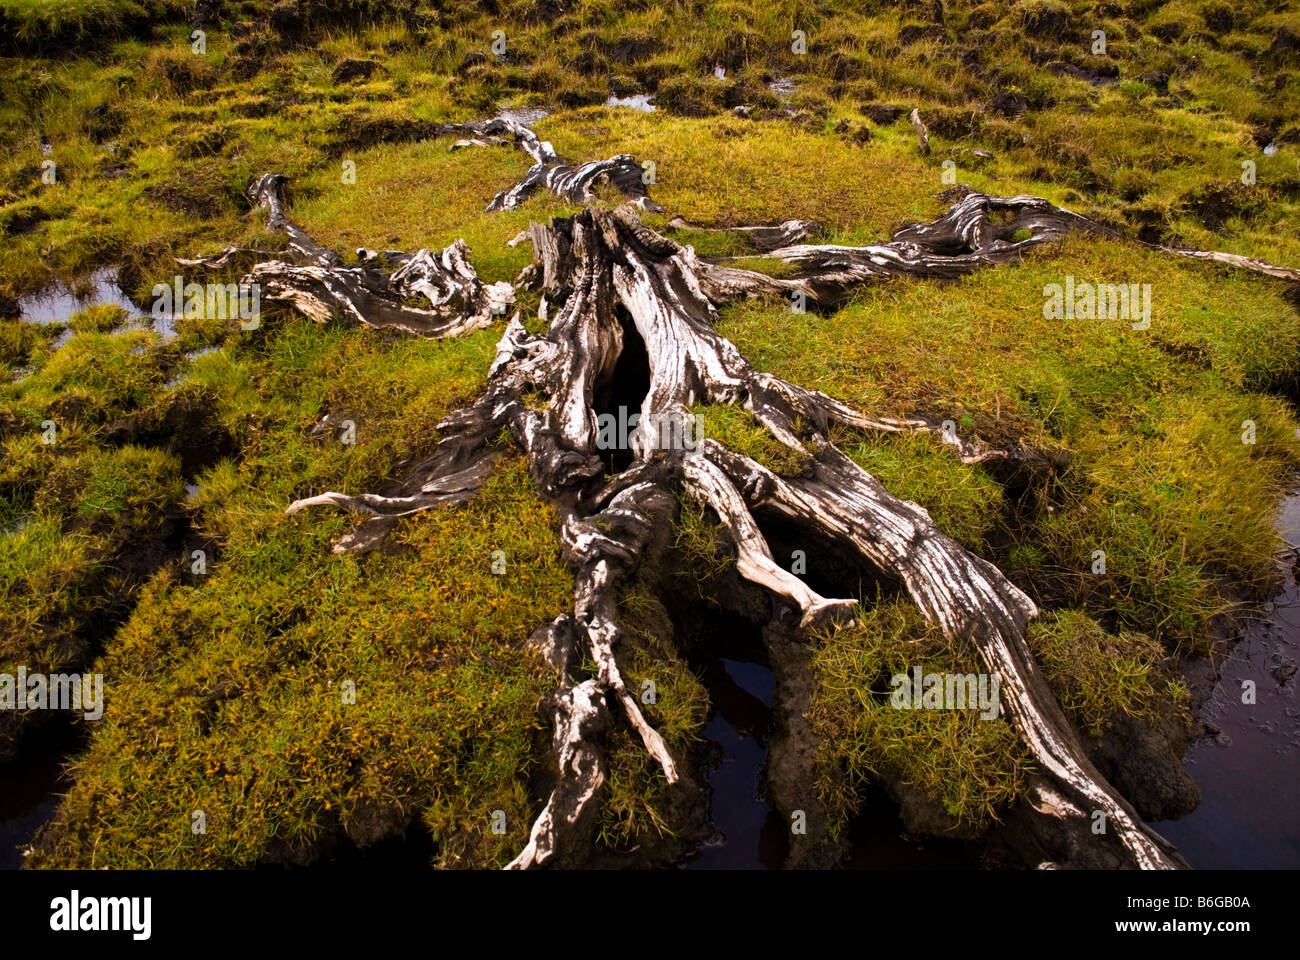 Ardara County Donegal Ireland Bog oak tree roots - Stock Image